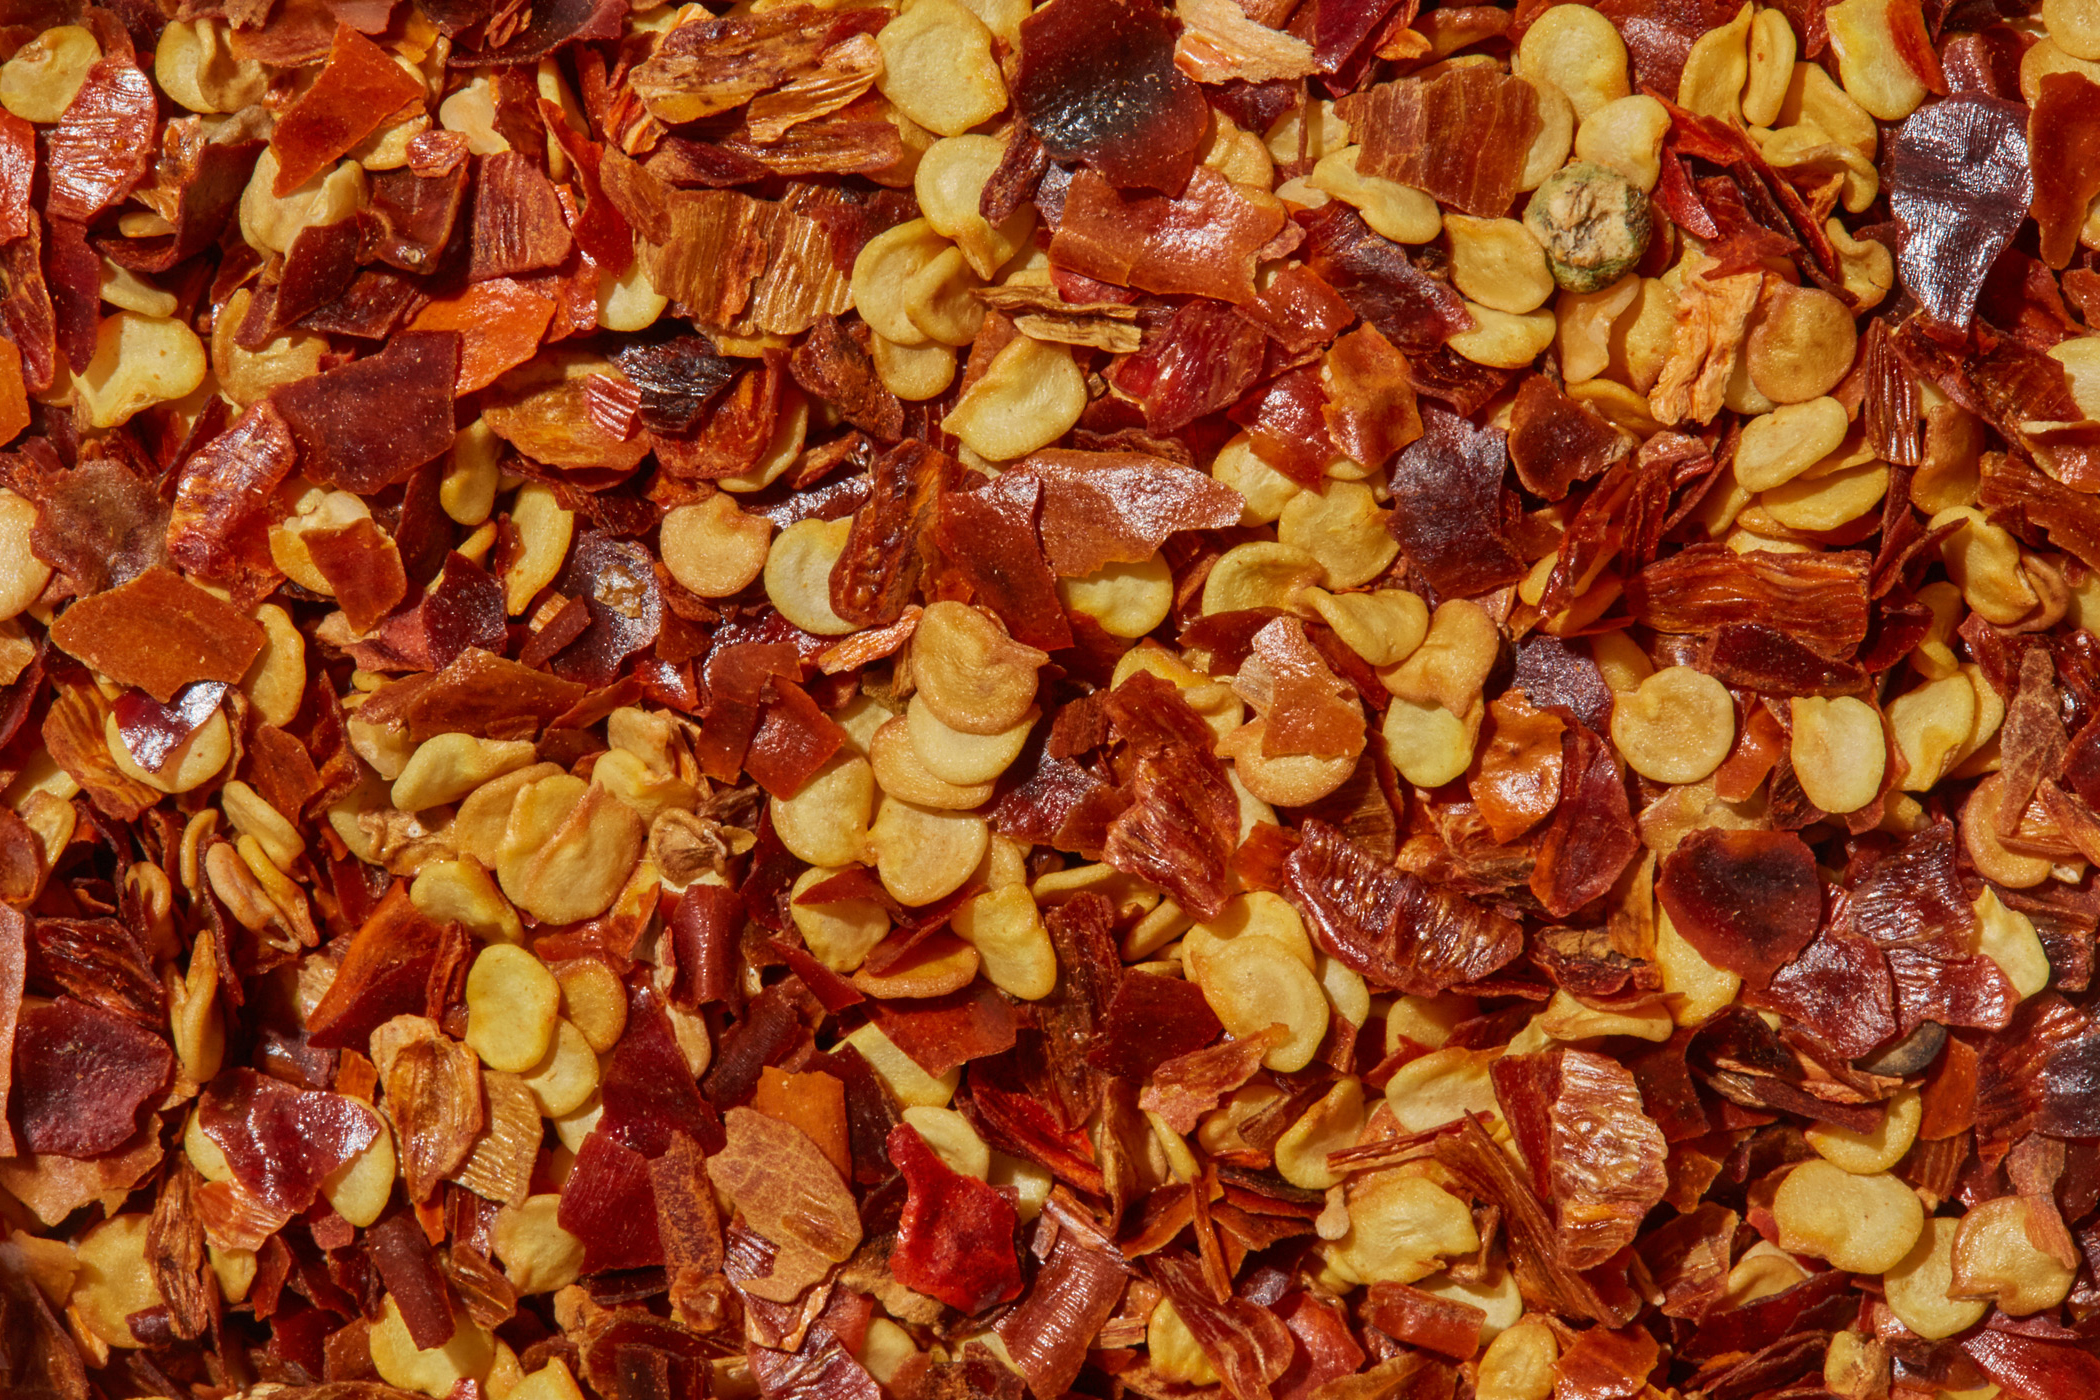 healthiest foods, health food, diet, nutrition, time.com stock, chili flakes, spices